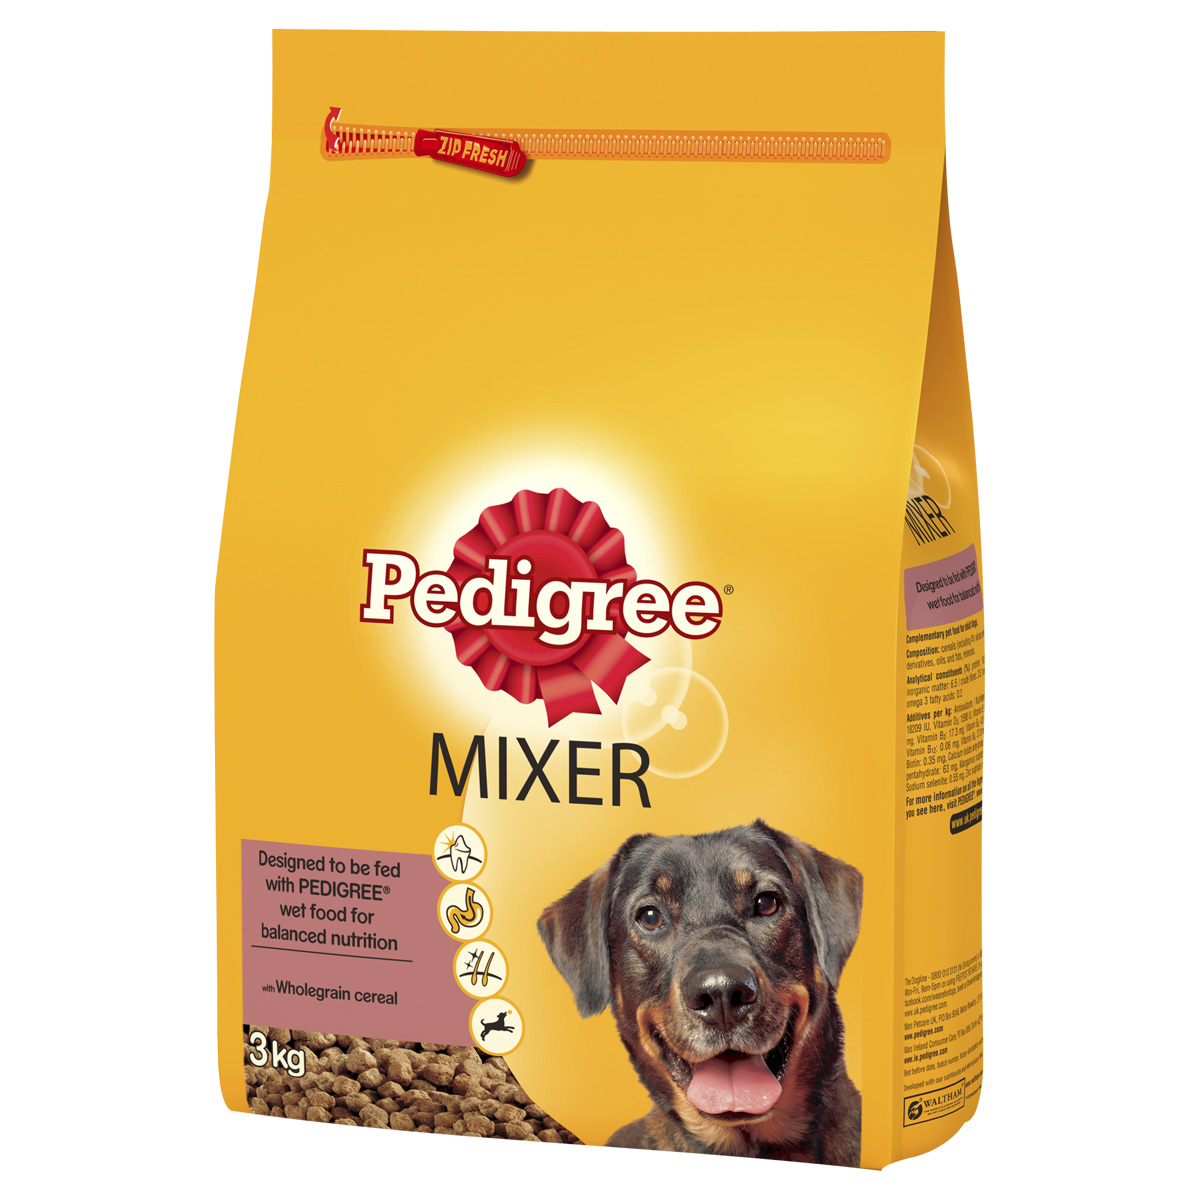 Pedigree Mixer Original Dog Food